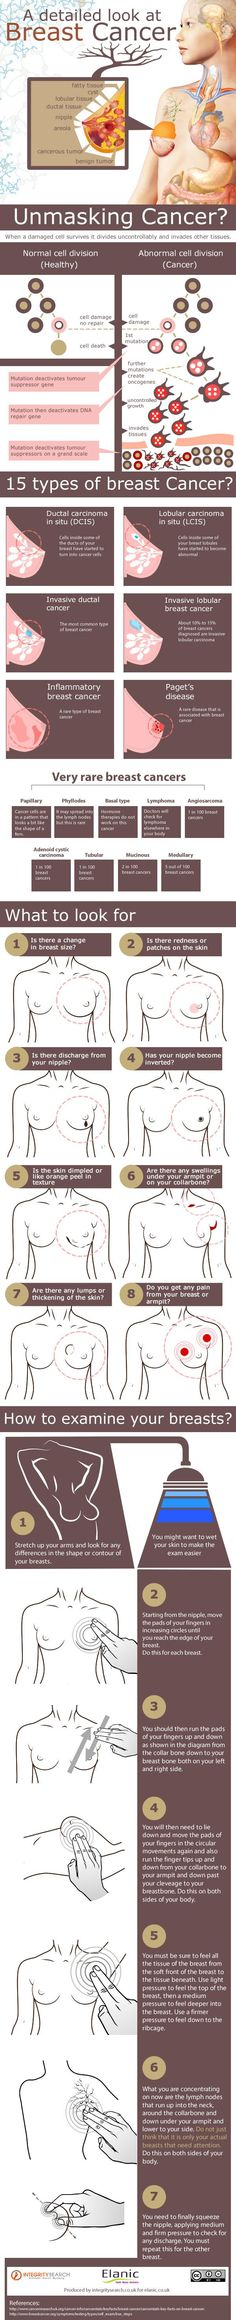 A Detailed Look at Breast Cancer Did you know there are 15 types of breast cancer? Brilliant infographic that shows you what to look for and how to examine your breasts... #breastcancer #infographic